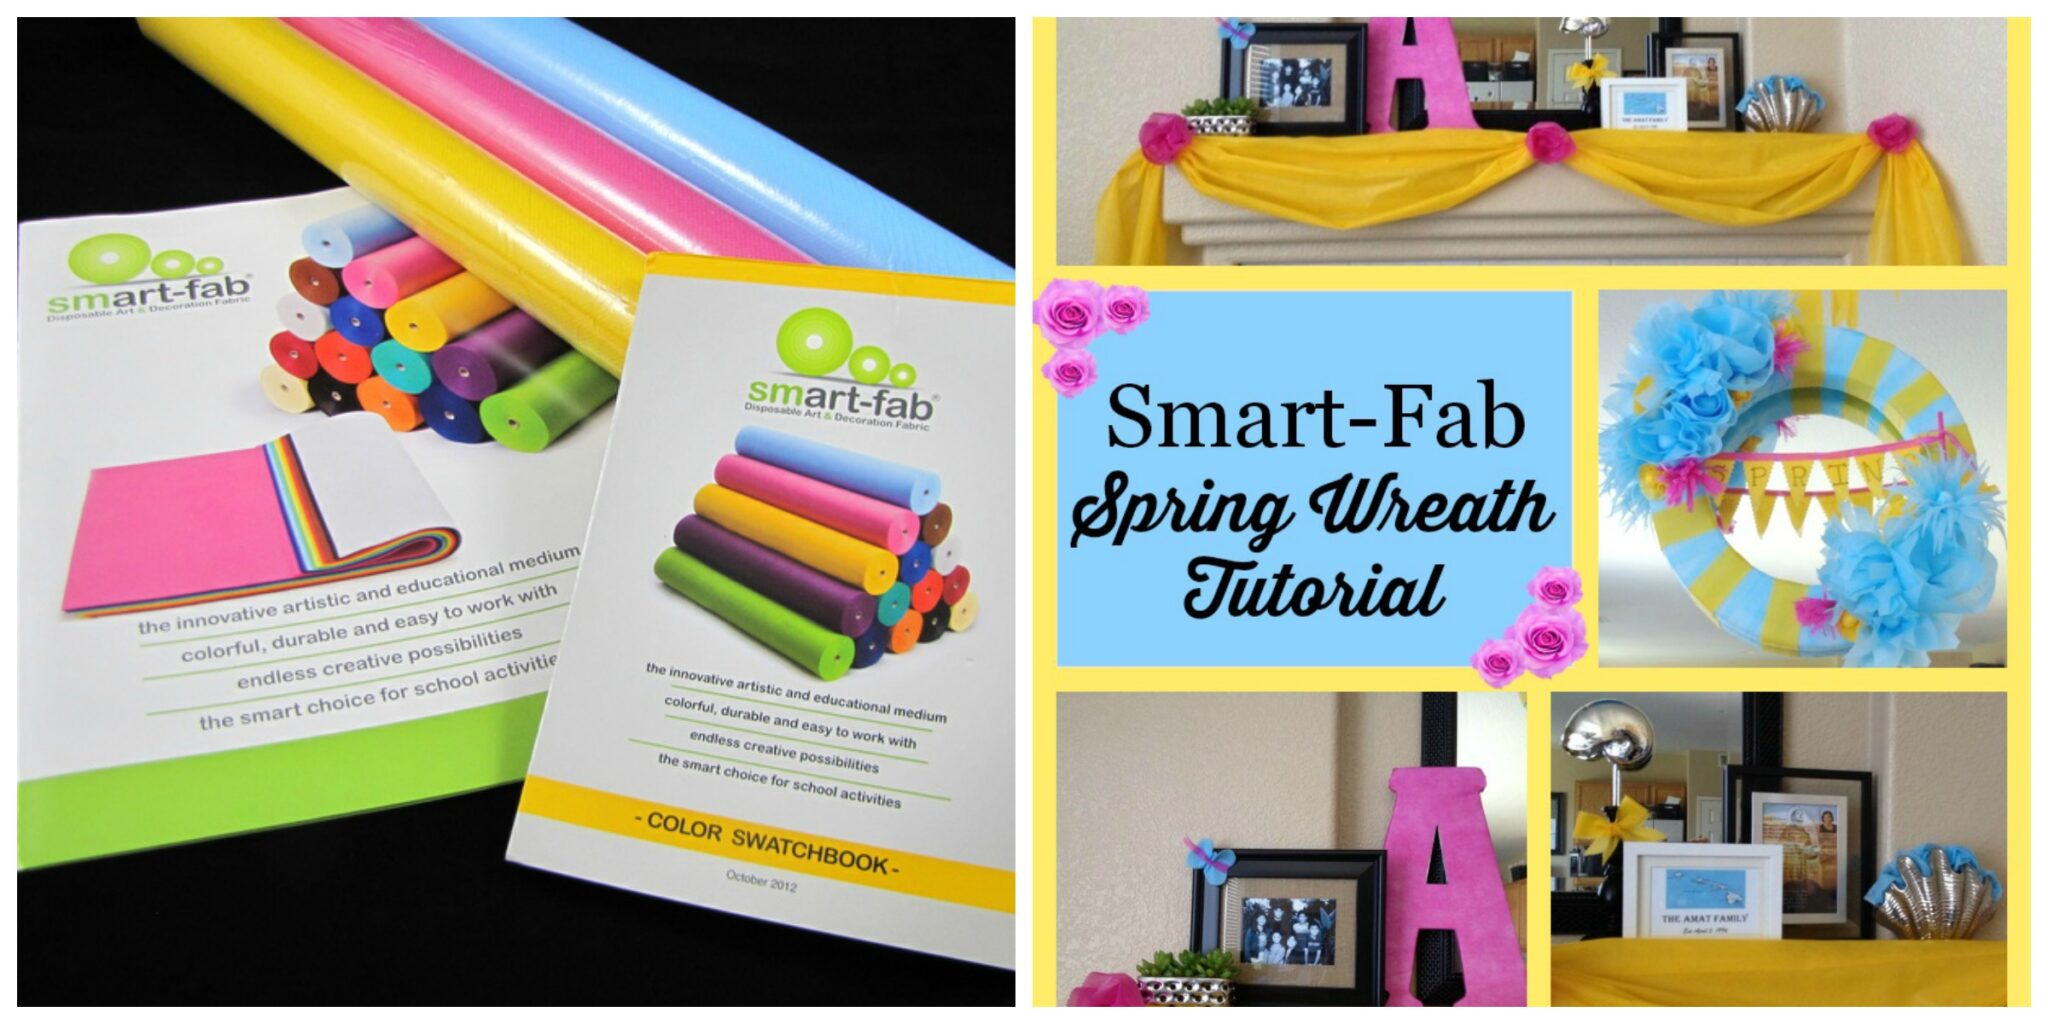 Smart-Fab Spring Wreath Tutorial & Giveaway!